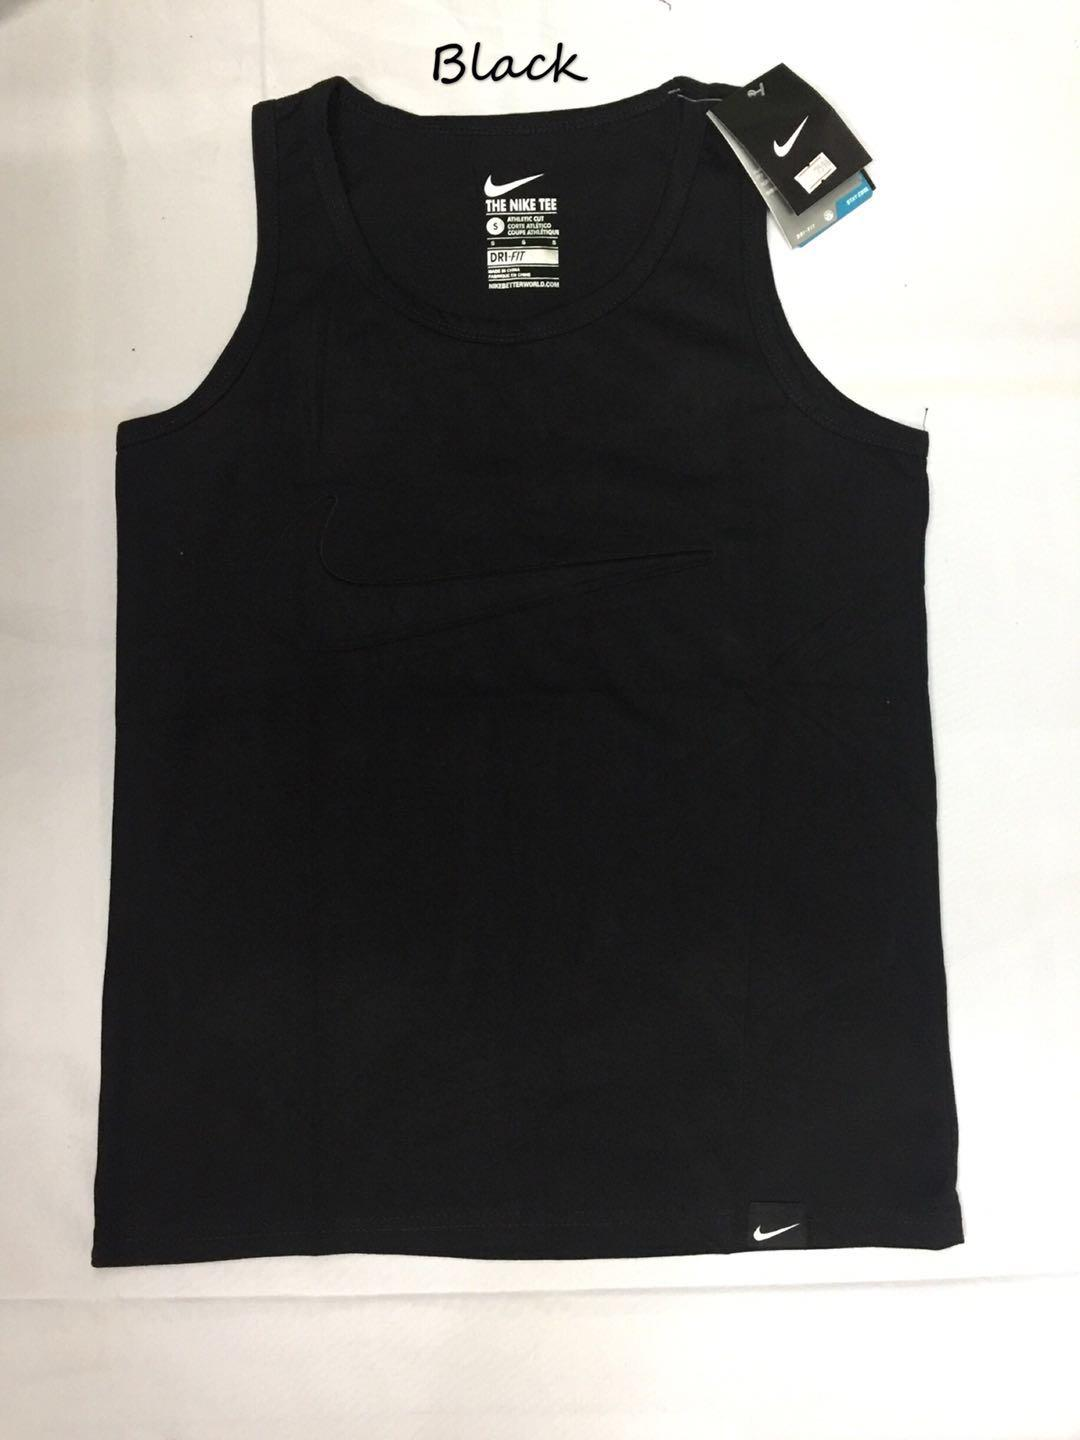 c099759a2c8b Sports Shirts for Men for sale - Sports T-Shirts online brands ...